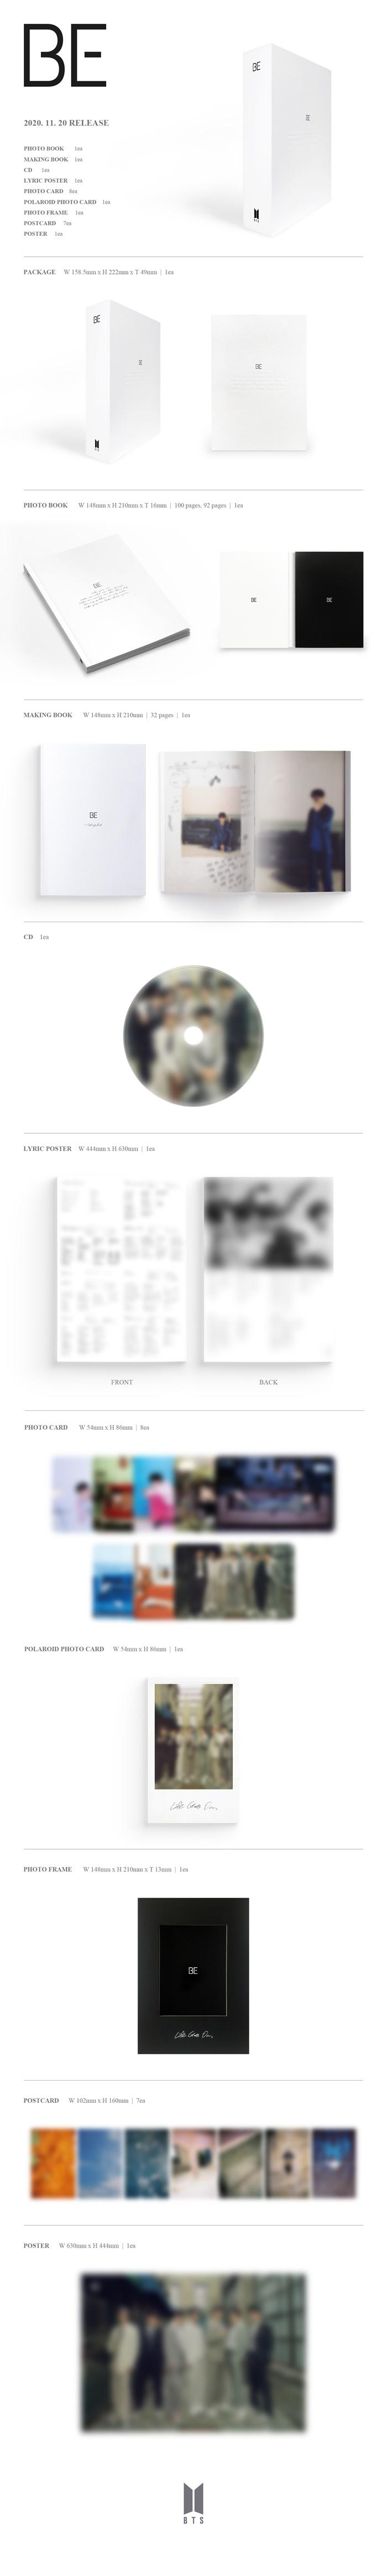 BTS BE(Delux Edition) + Weverse Gift + Poster